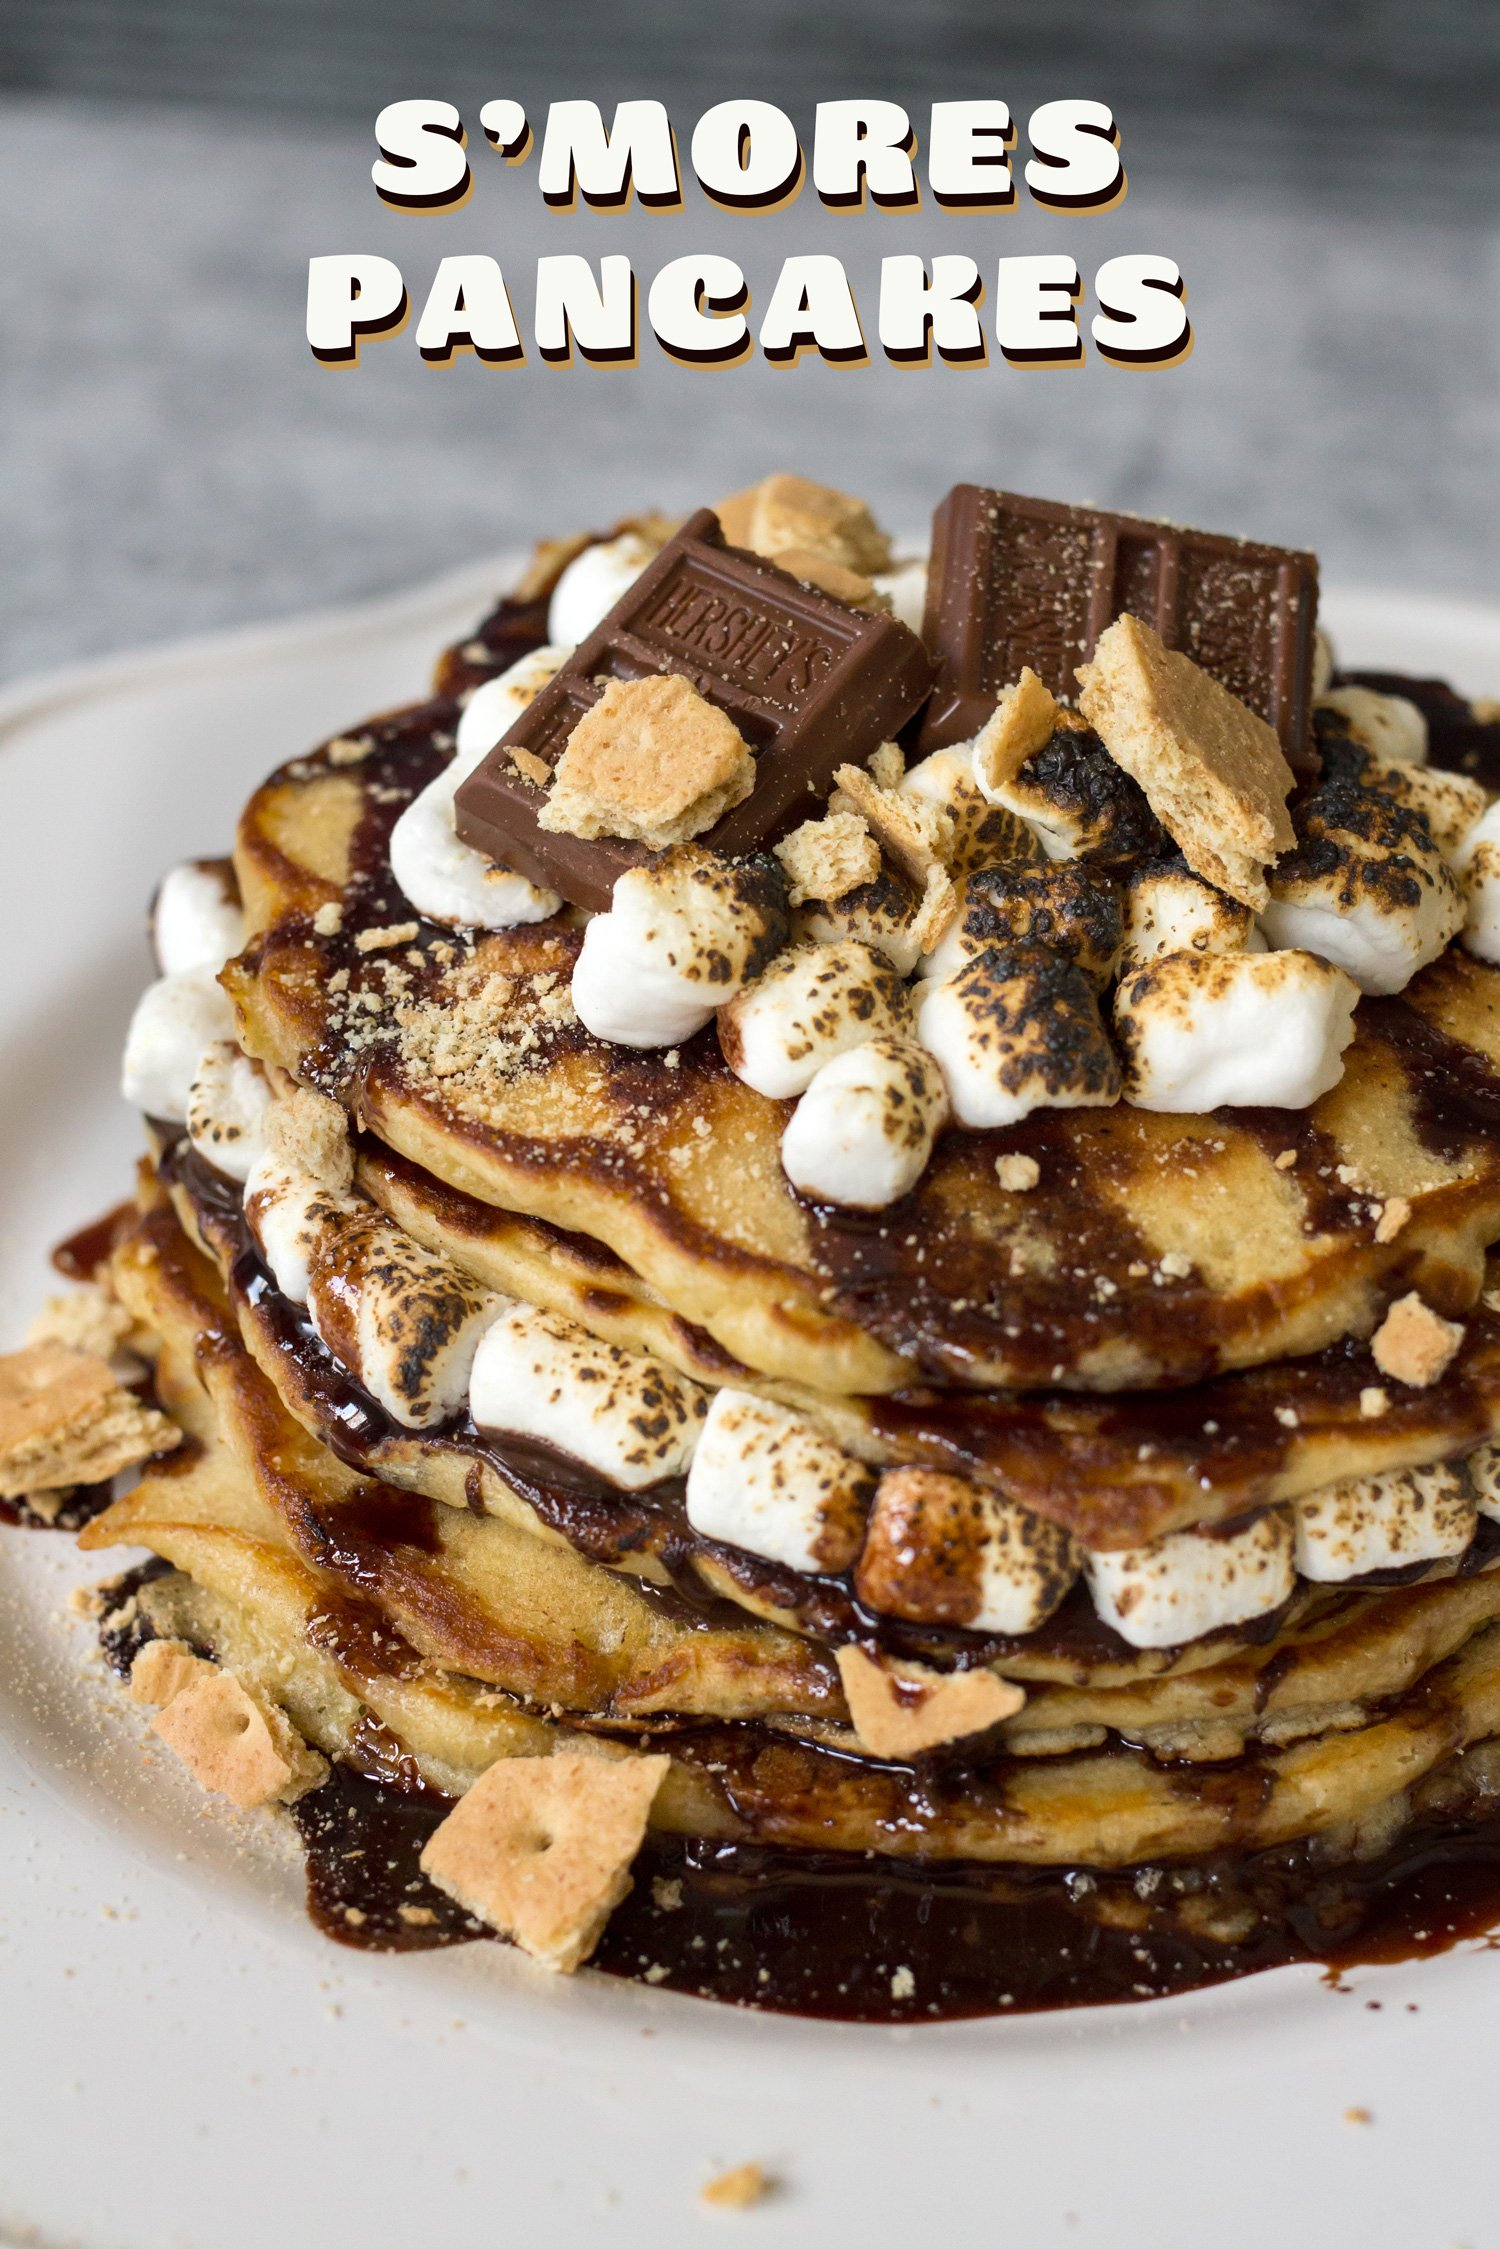 S'mores Pancakes That Are Topped With Graham Cracker Crumbs And Toasted Marshmallows